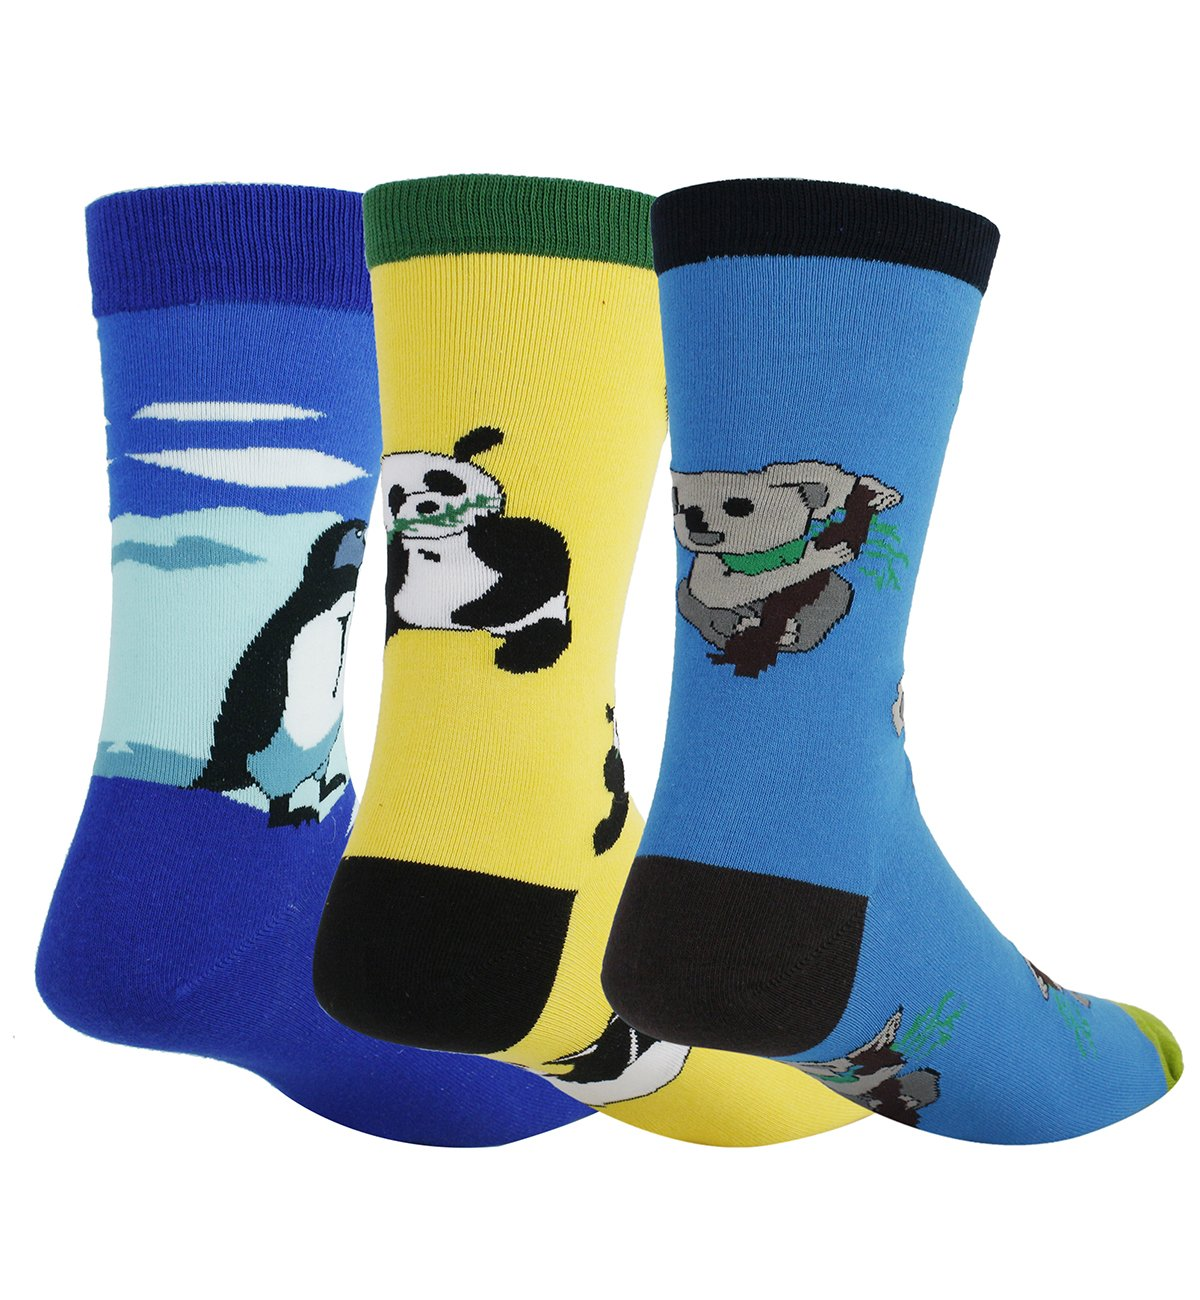 3 Pack Men's Crazy Cool Animals Pattern Novelty Crew Cotton Funny Socks by Happypop (Image #1)